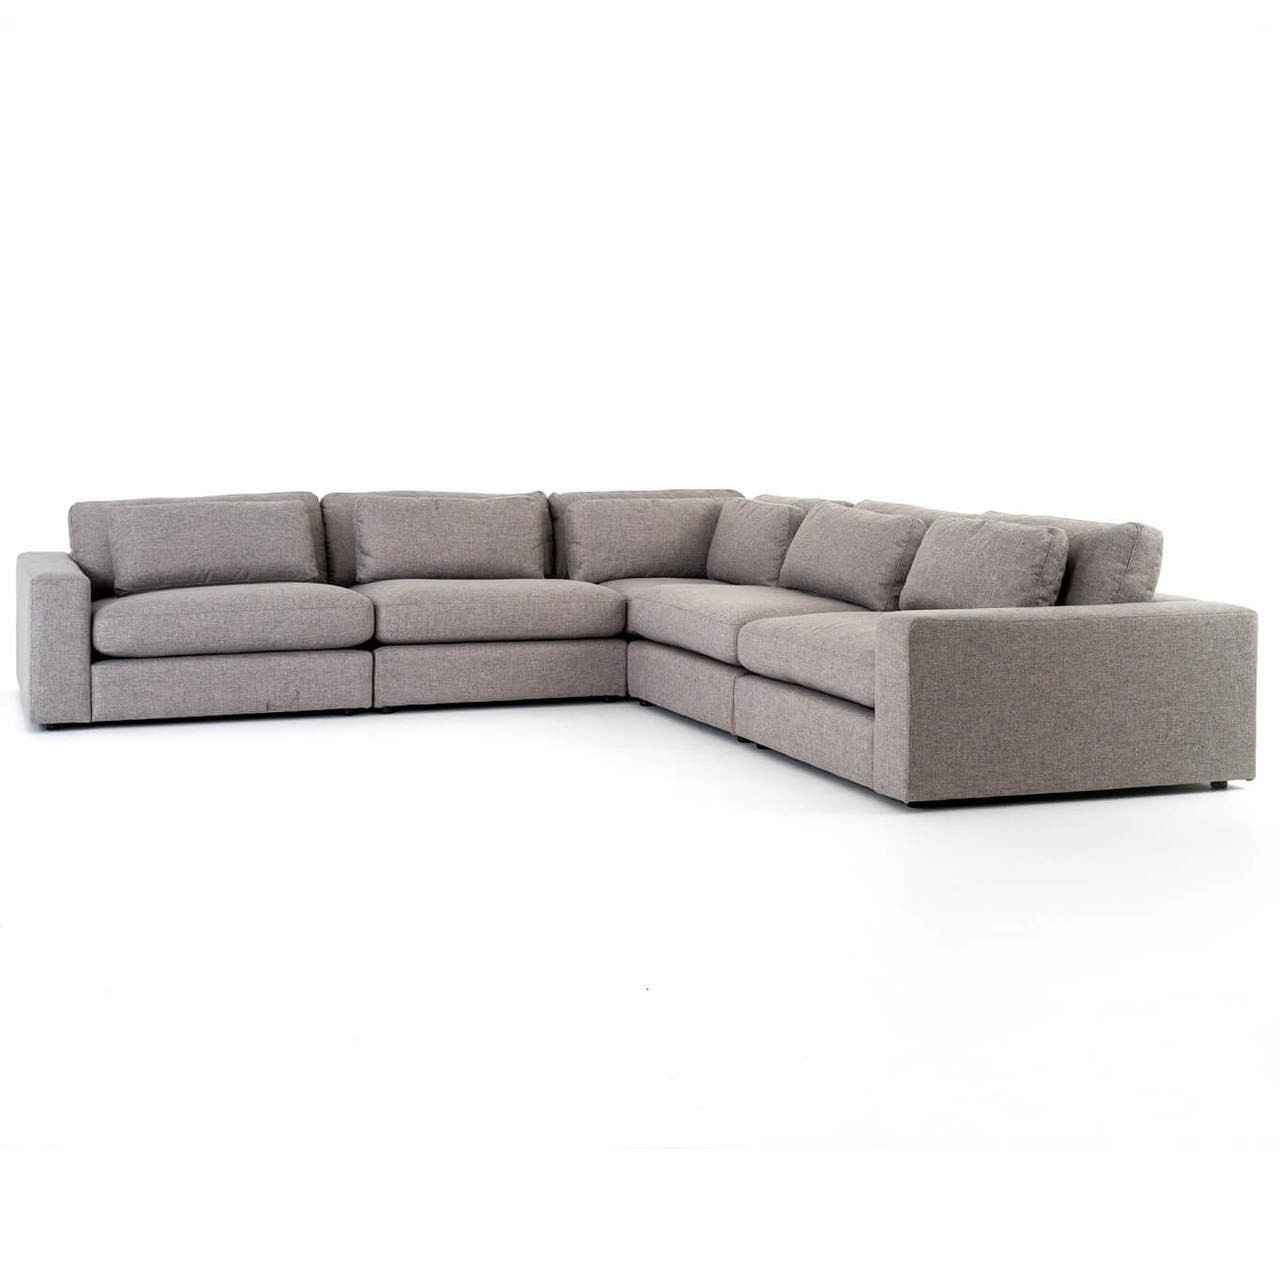 Fabulous Bloor Contemporary Gray 5 Piece Corner Sectional Sofas 131 Caraccident5 Cool Chair Designs And Ideas Caraccident5Info